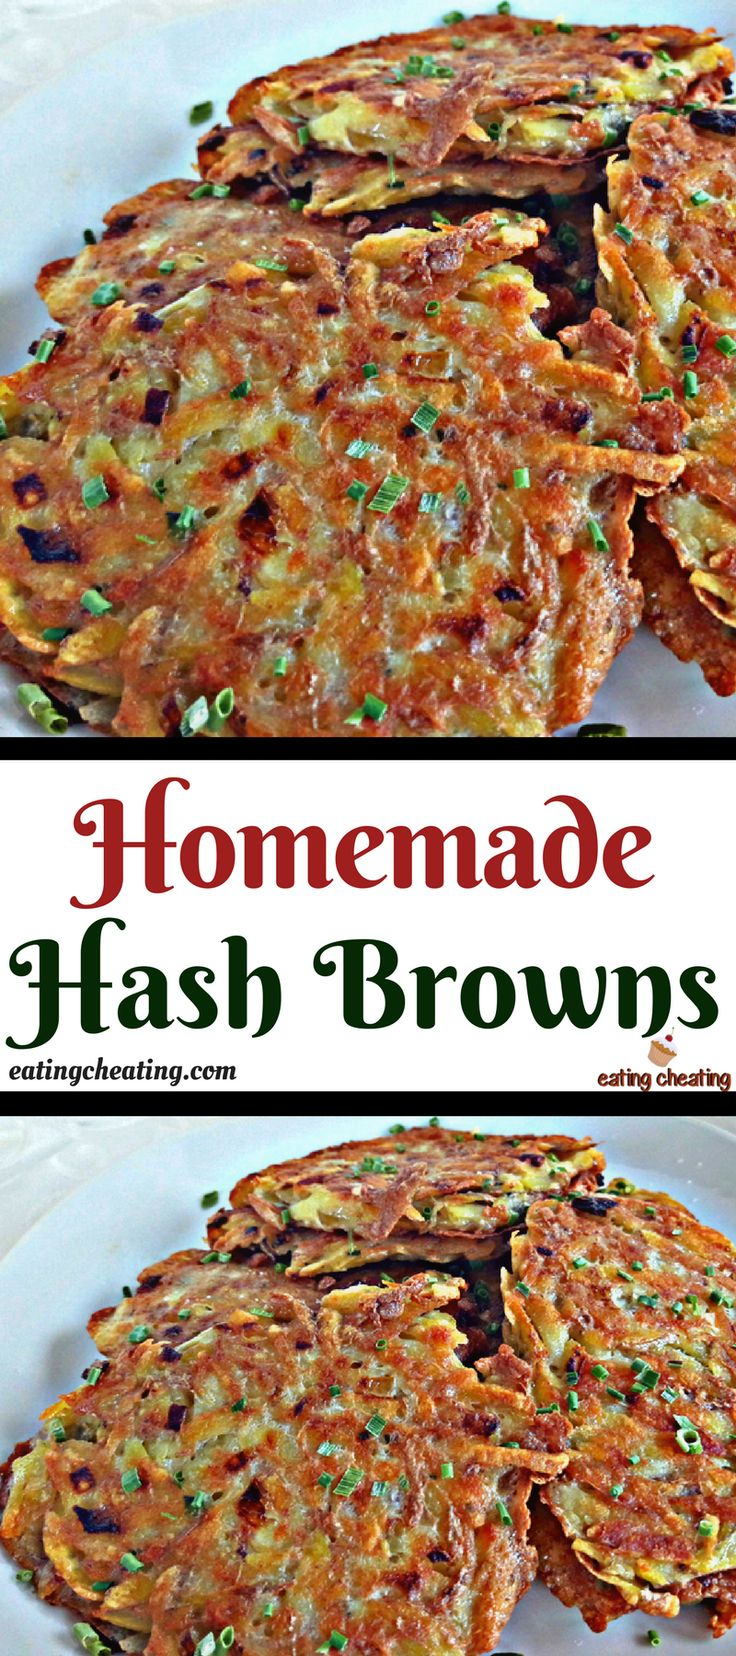 Do you want to learn how to make homemade hash browns quick and easy? Here you will see how to make homemade hash browns perfect for breakfast recipe. This hash browns can be served with some nice sauce or just with some fresh salad. Enjoy watching this recipe for the homemade hash browns!